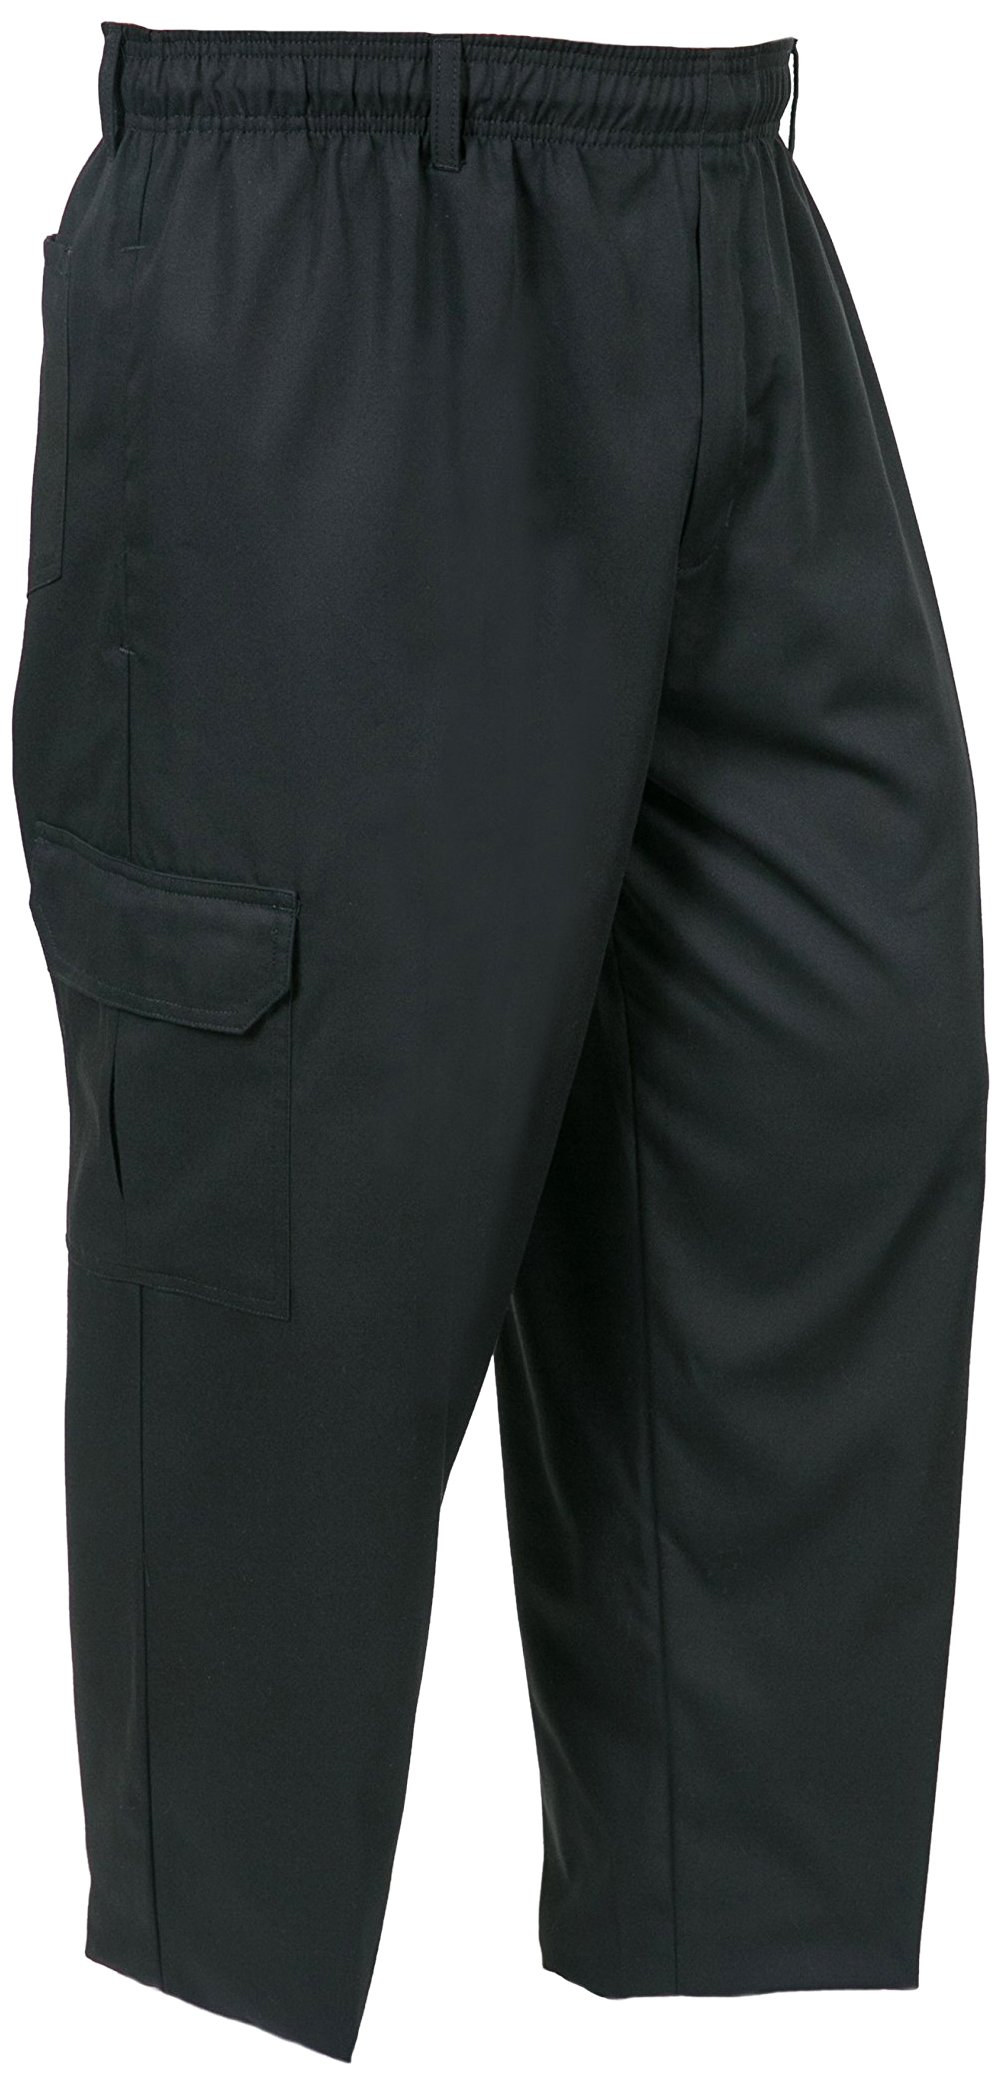 Mercer Culinary M61090BK5X Genesis Men's Chef Cargo Pant, 5X-Large, Black